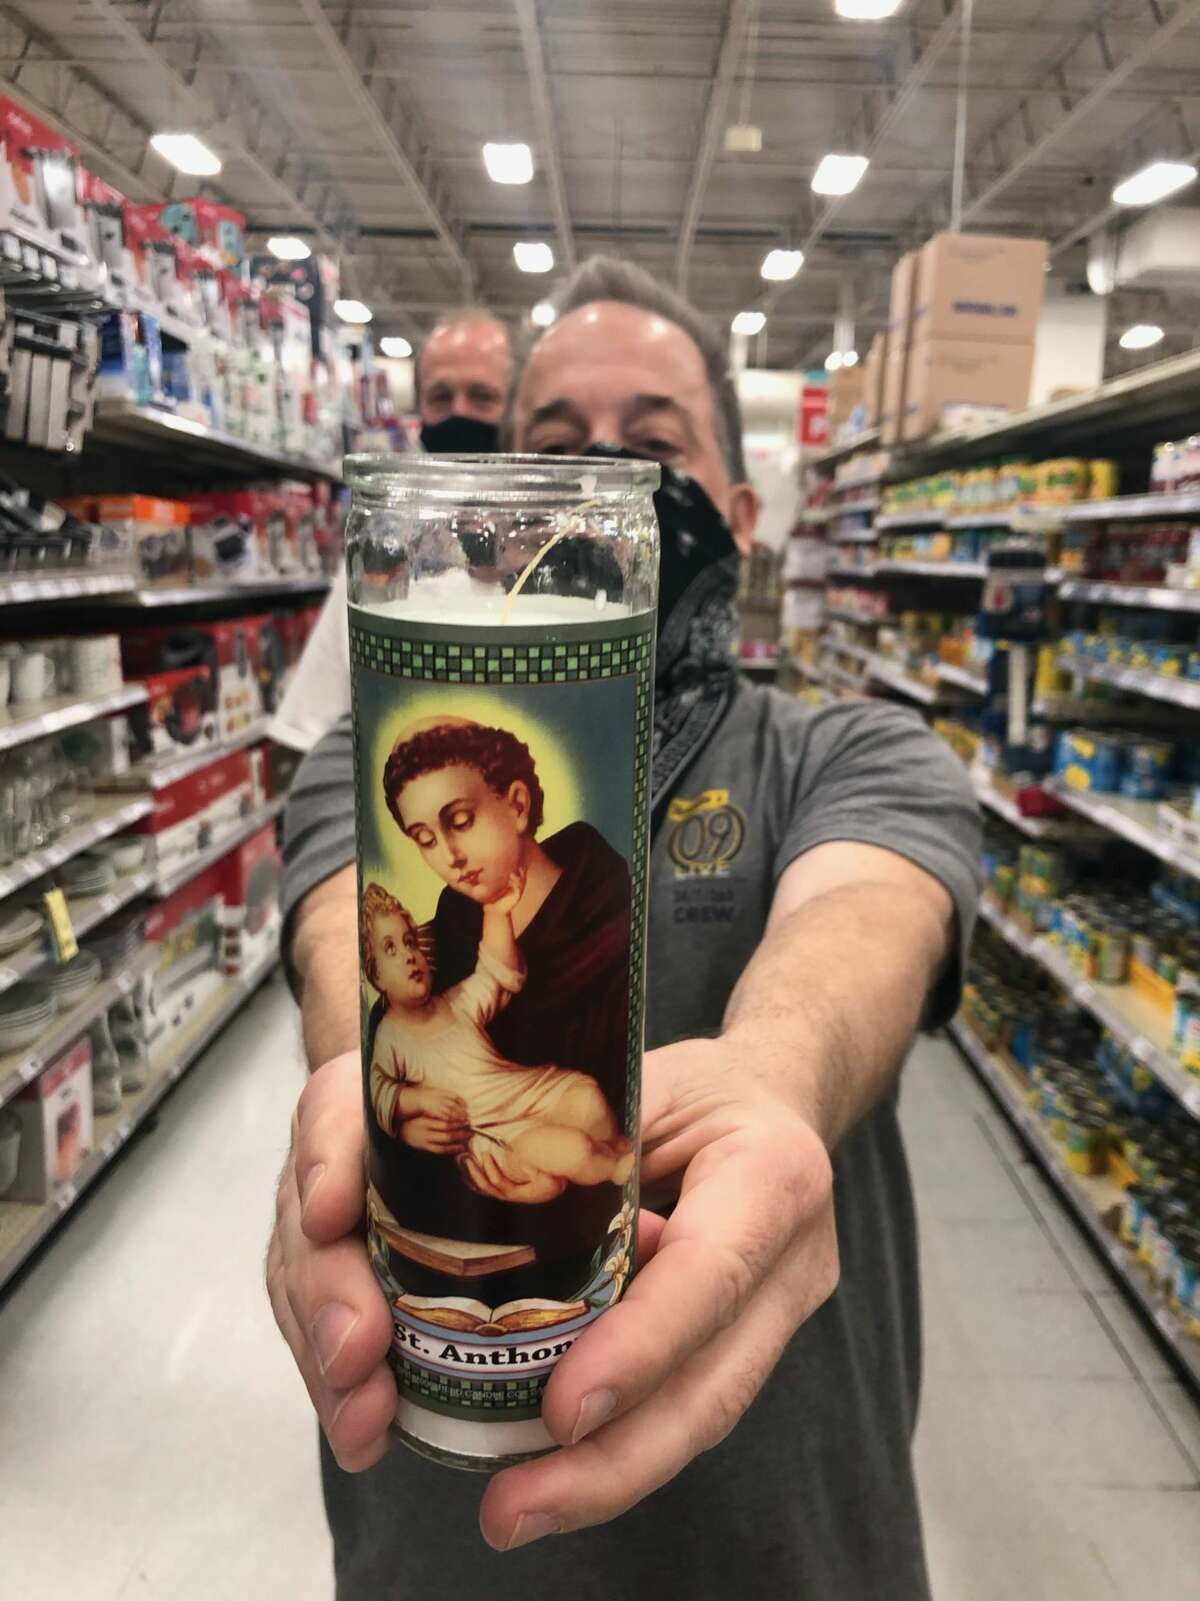 St. Anthony, the patron Saint of San Antonio, leading Don Lucas (front) and Paul Franklin (back) on their H-E-B pilgrimage.